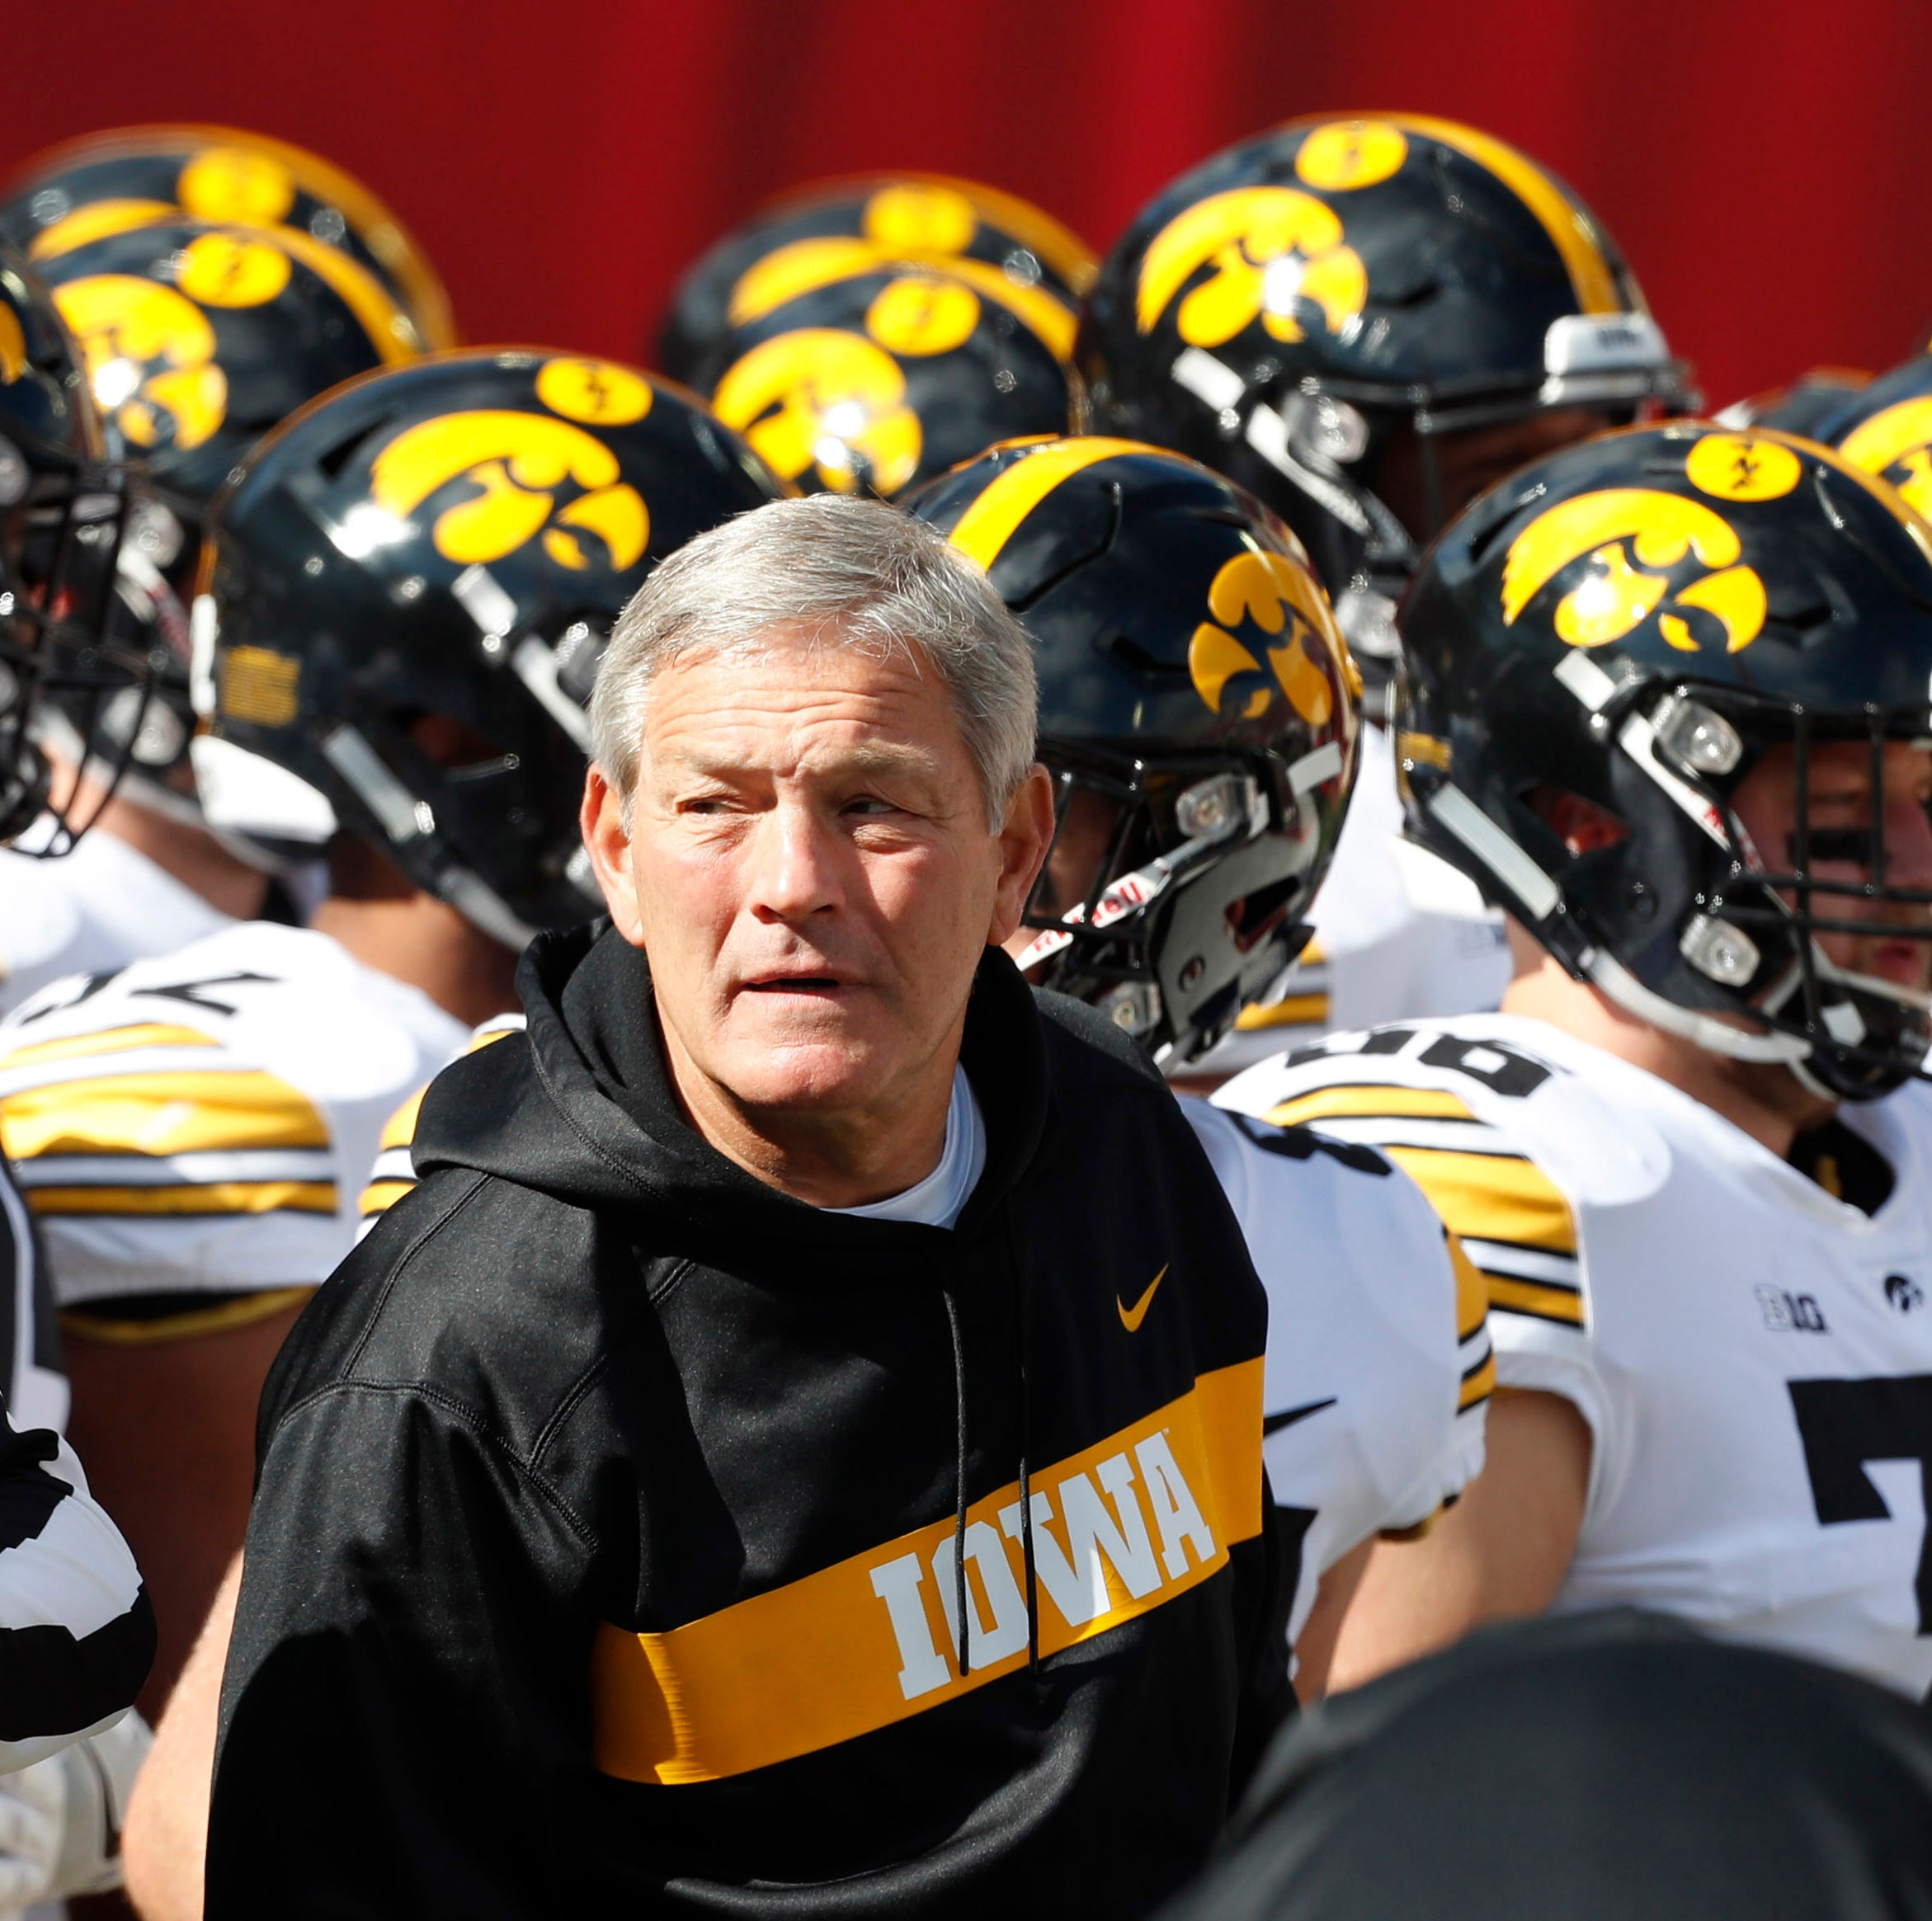 Iowa football: Hawkeyes enter the Top 25 after latest rout